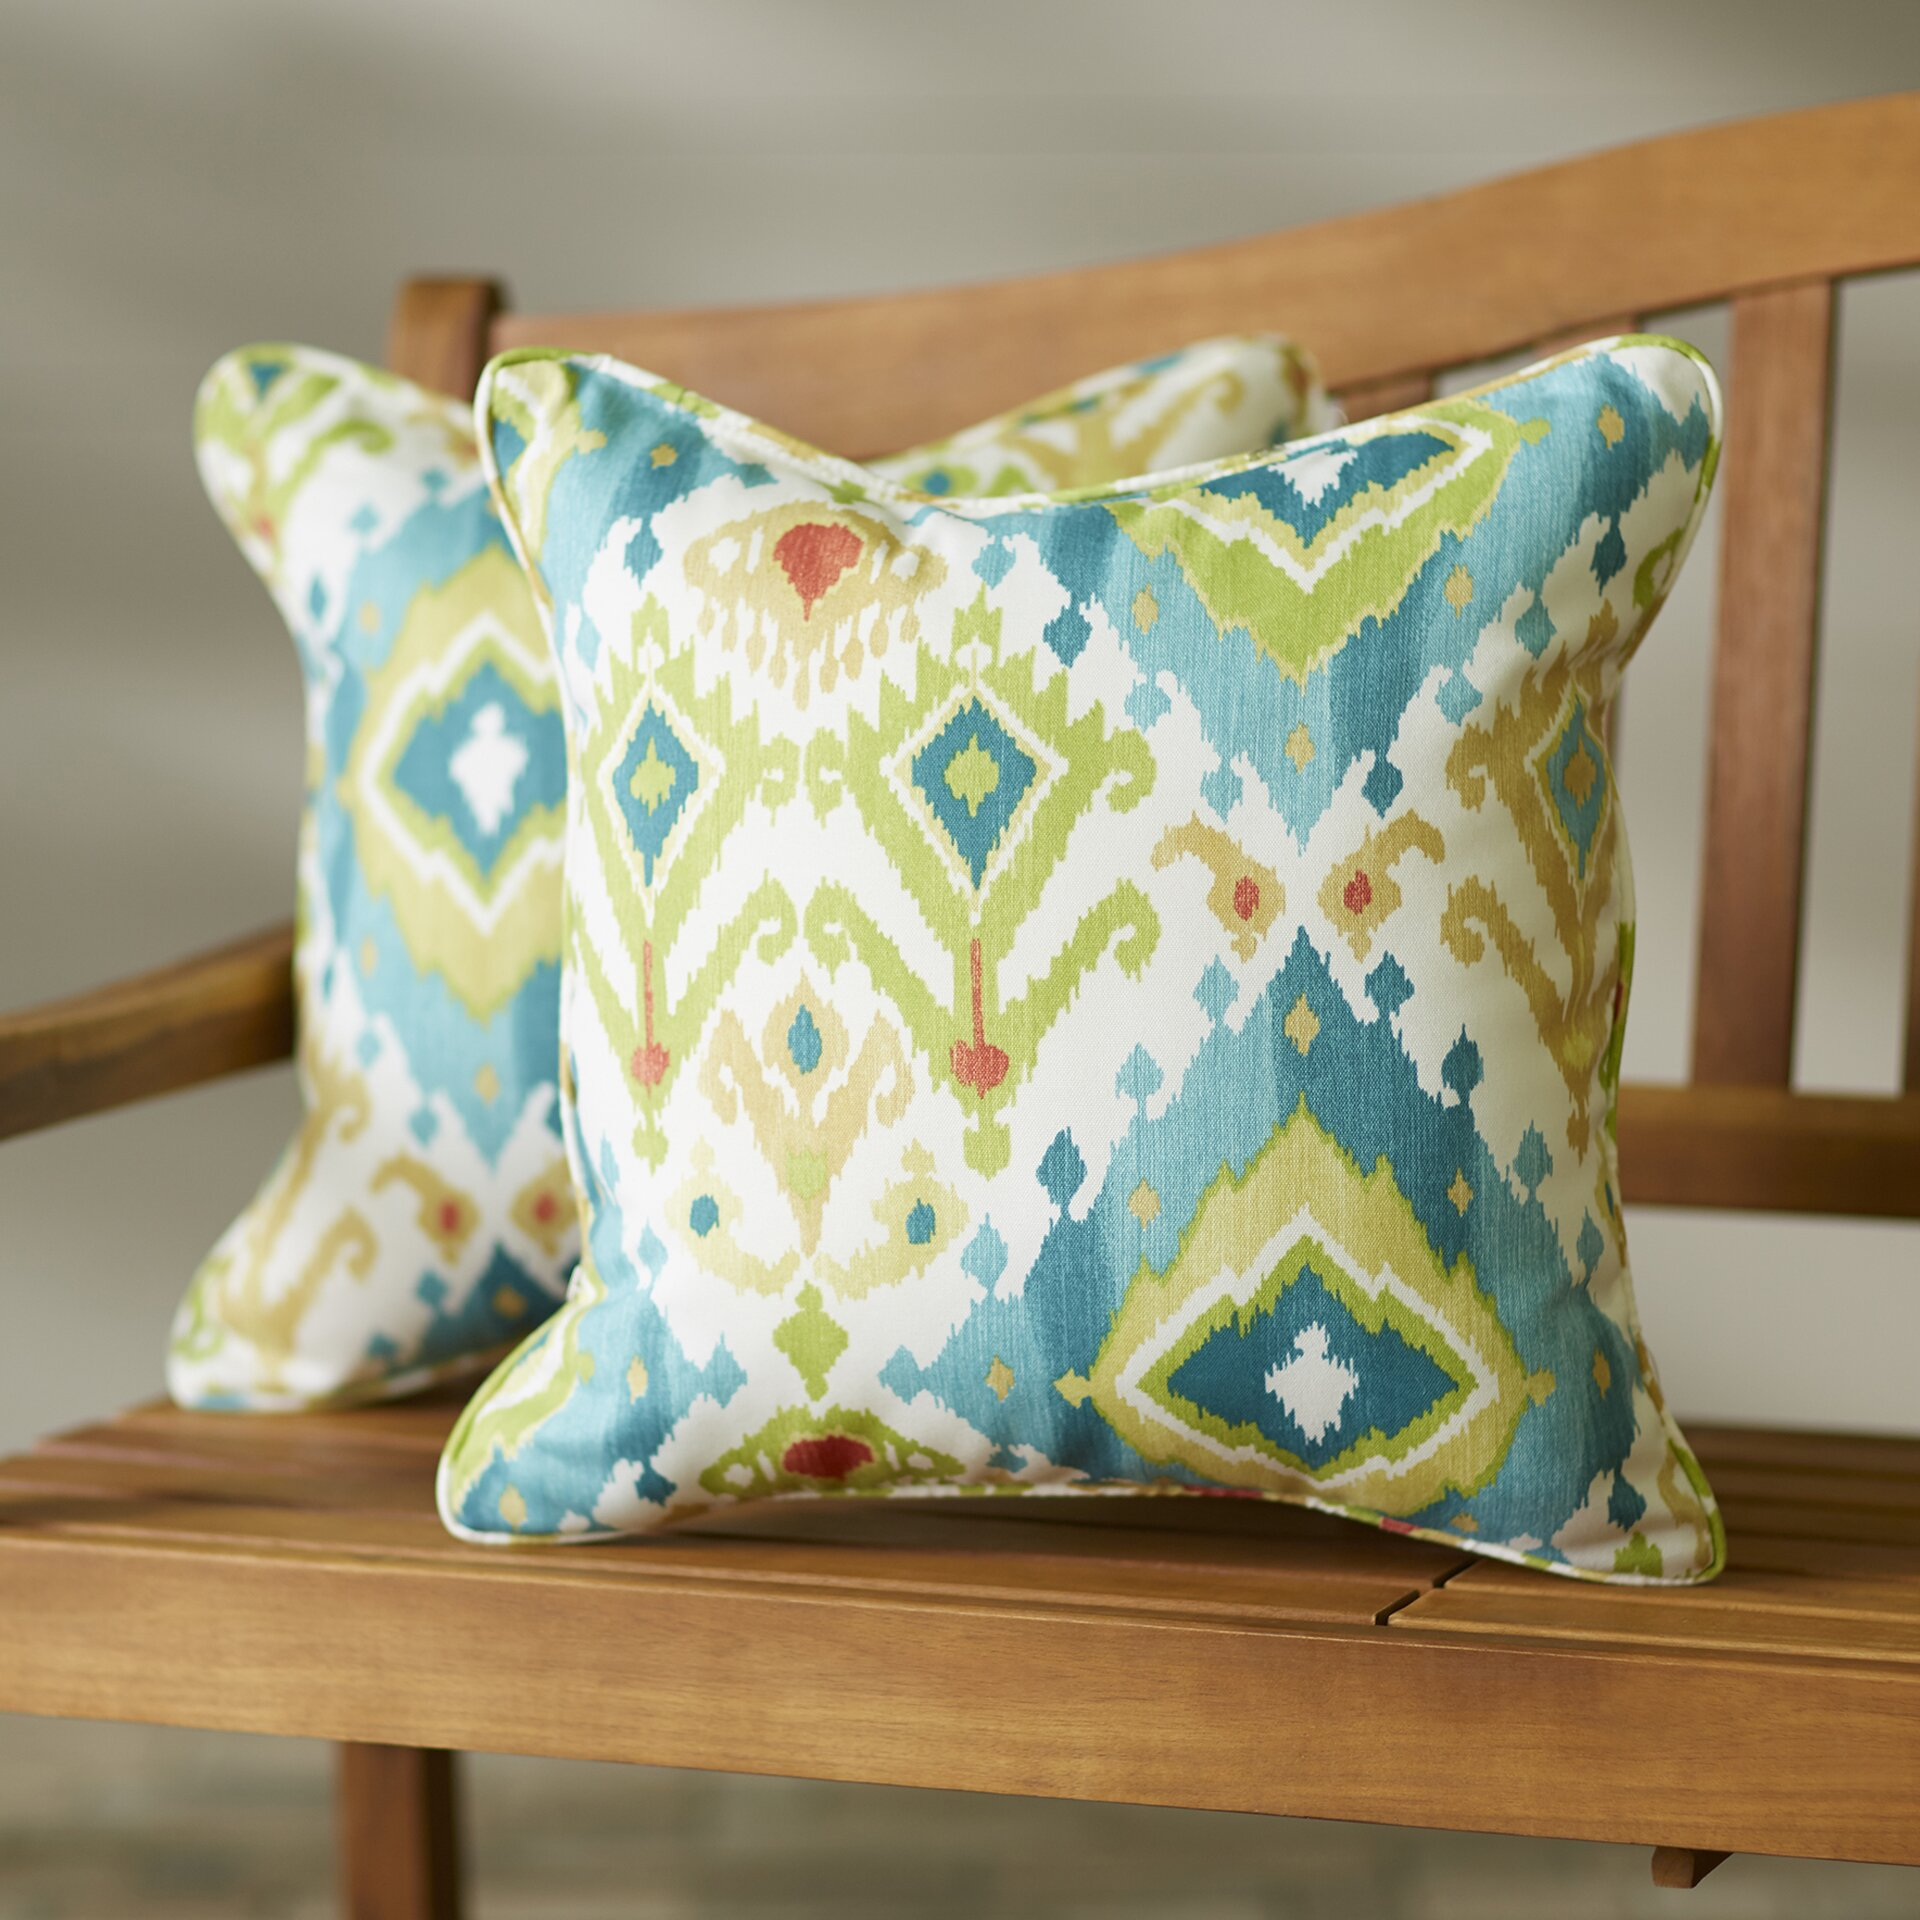 Throw Pillows In Abuja : Bungalow Rose Oxford Indoor/Outdoor Throw Pillow & Reviews Wayfair.ca